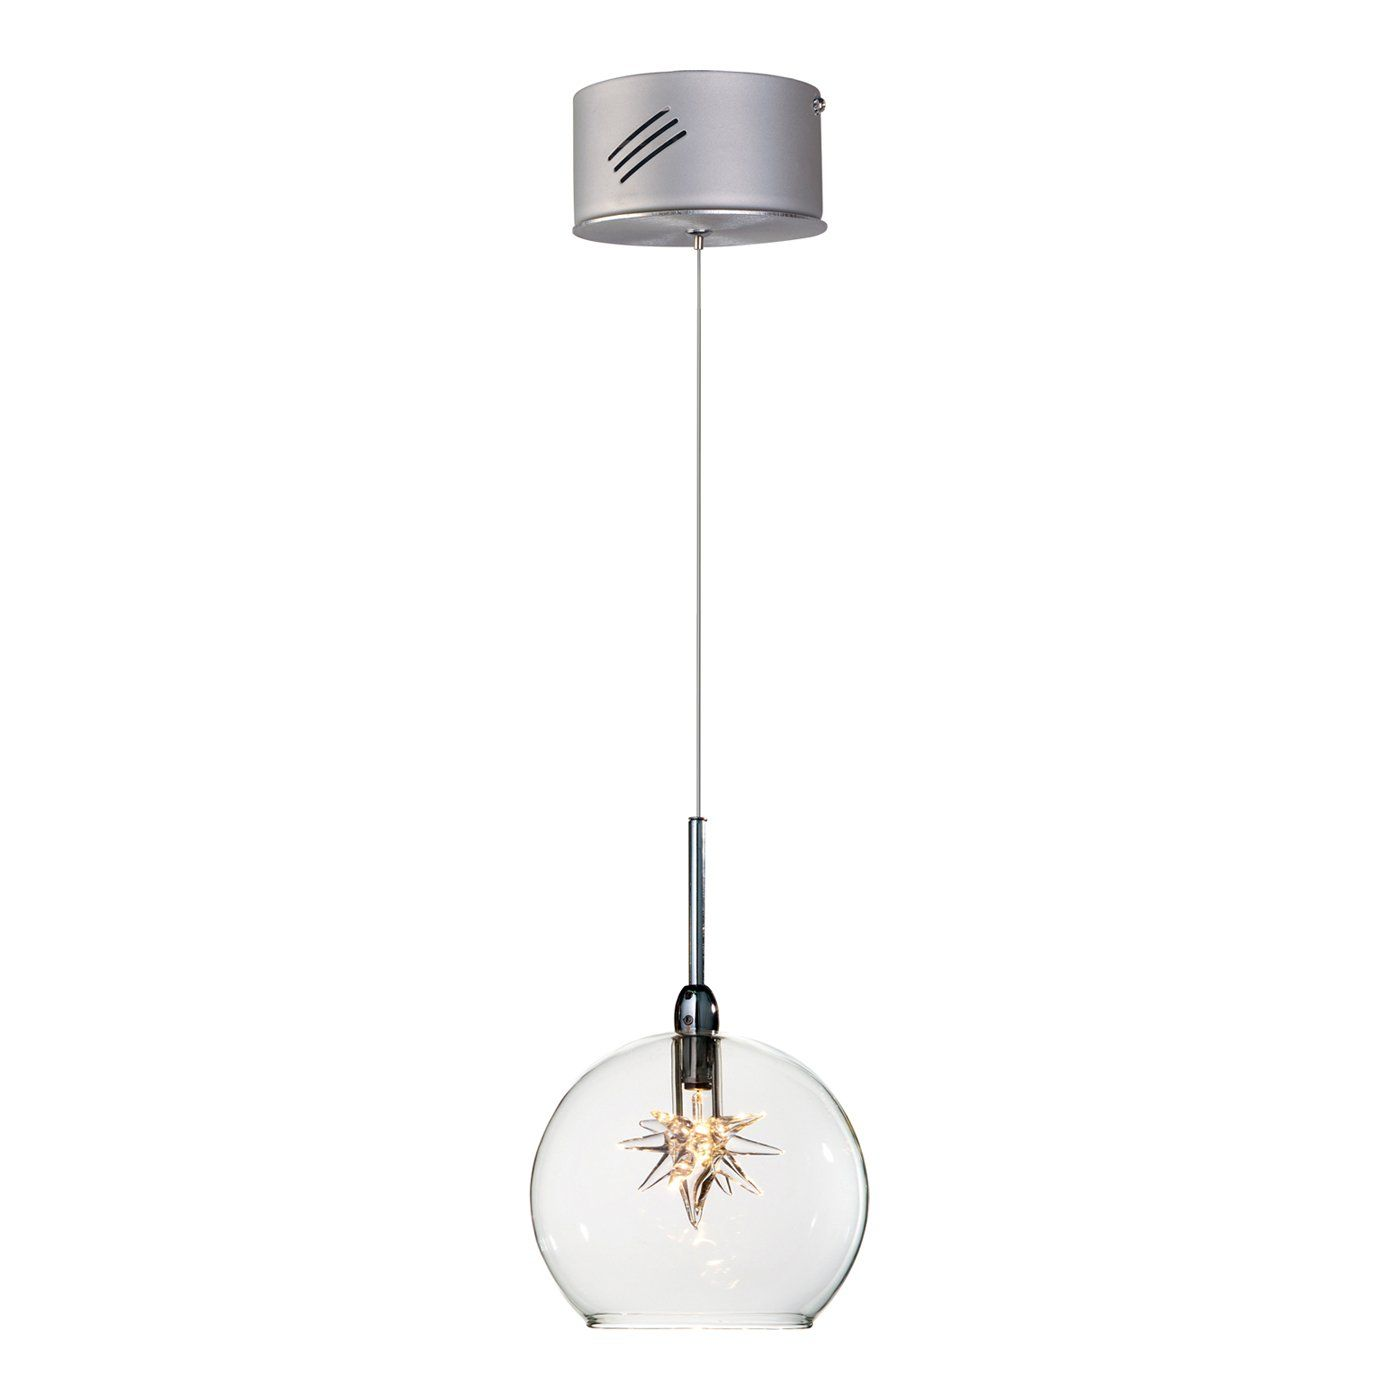 Et lighting e starburst star mini pendant satin nickel atg